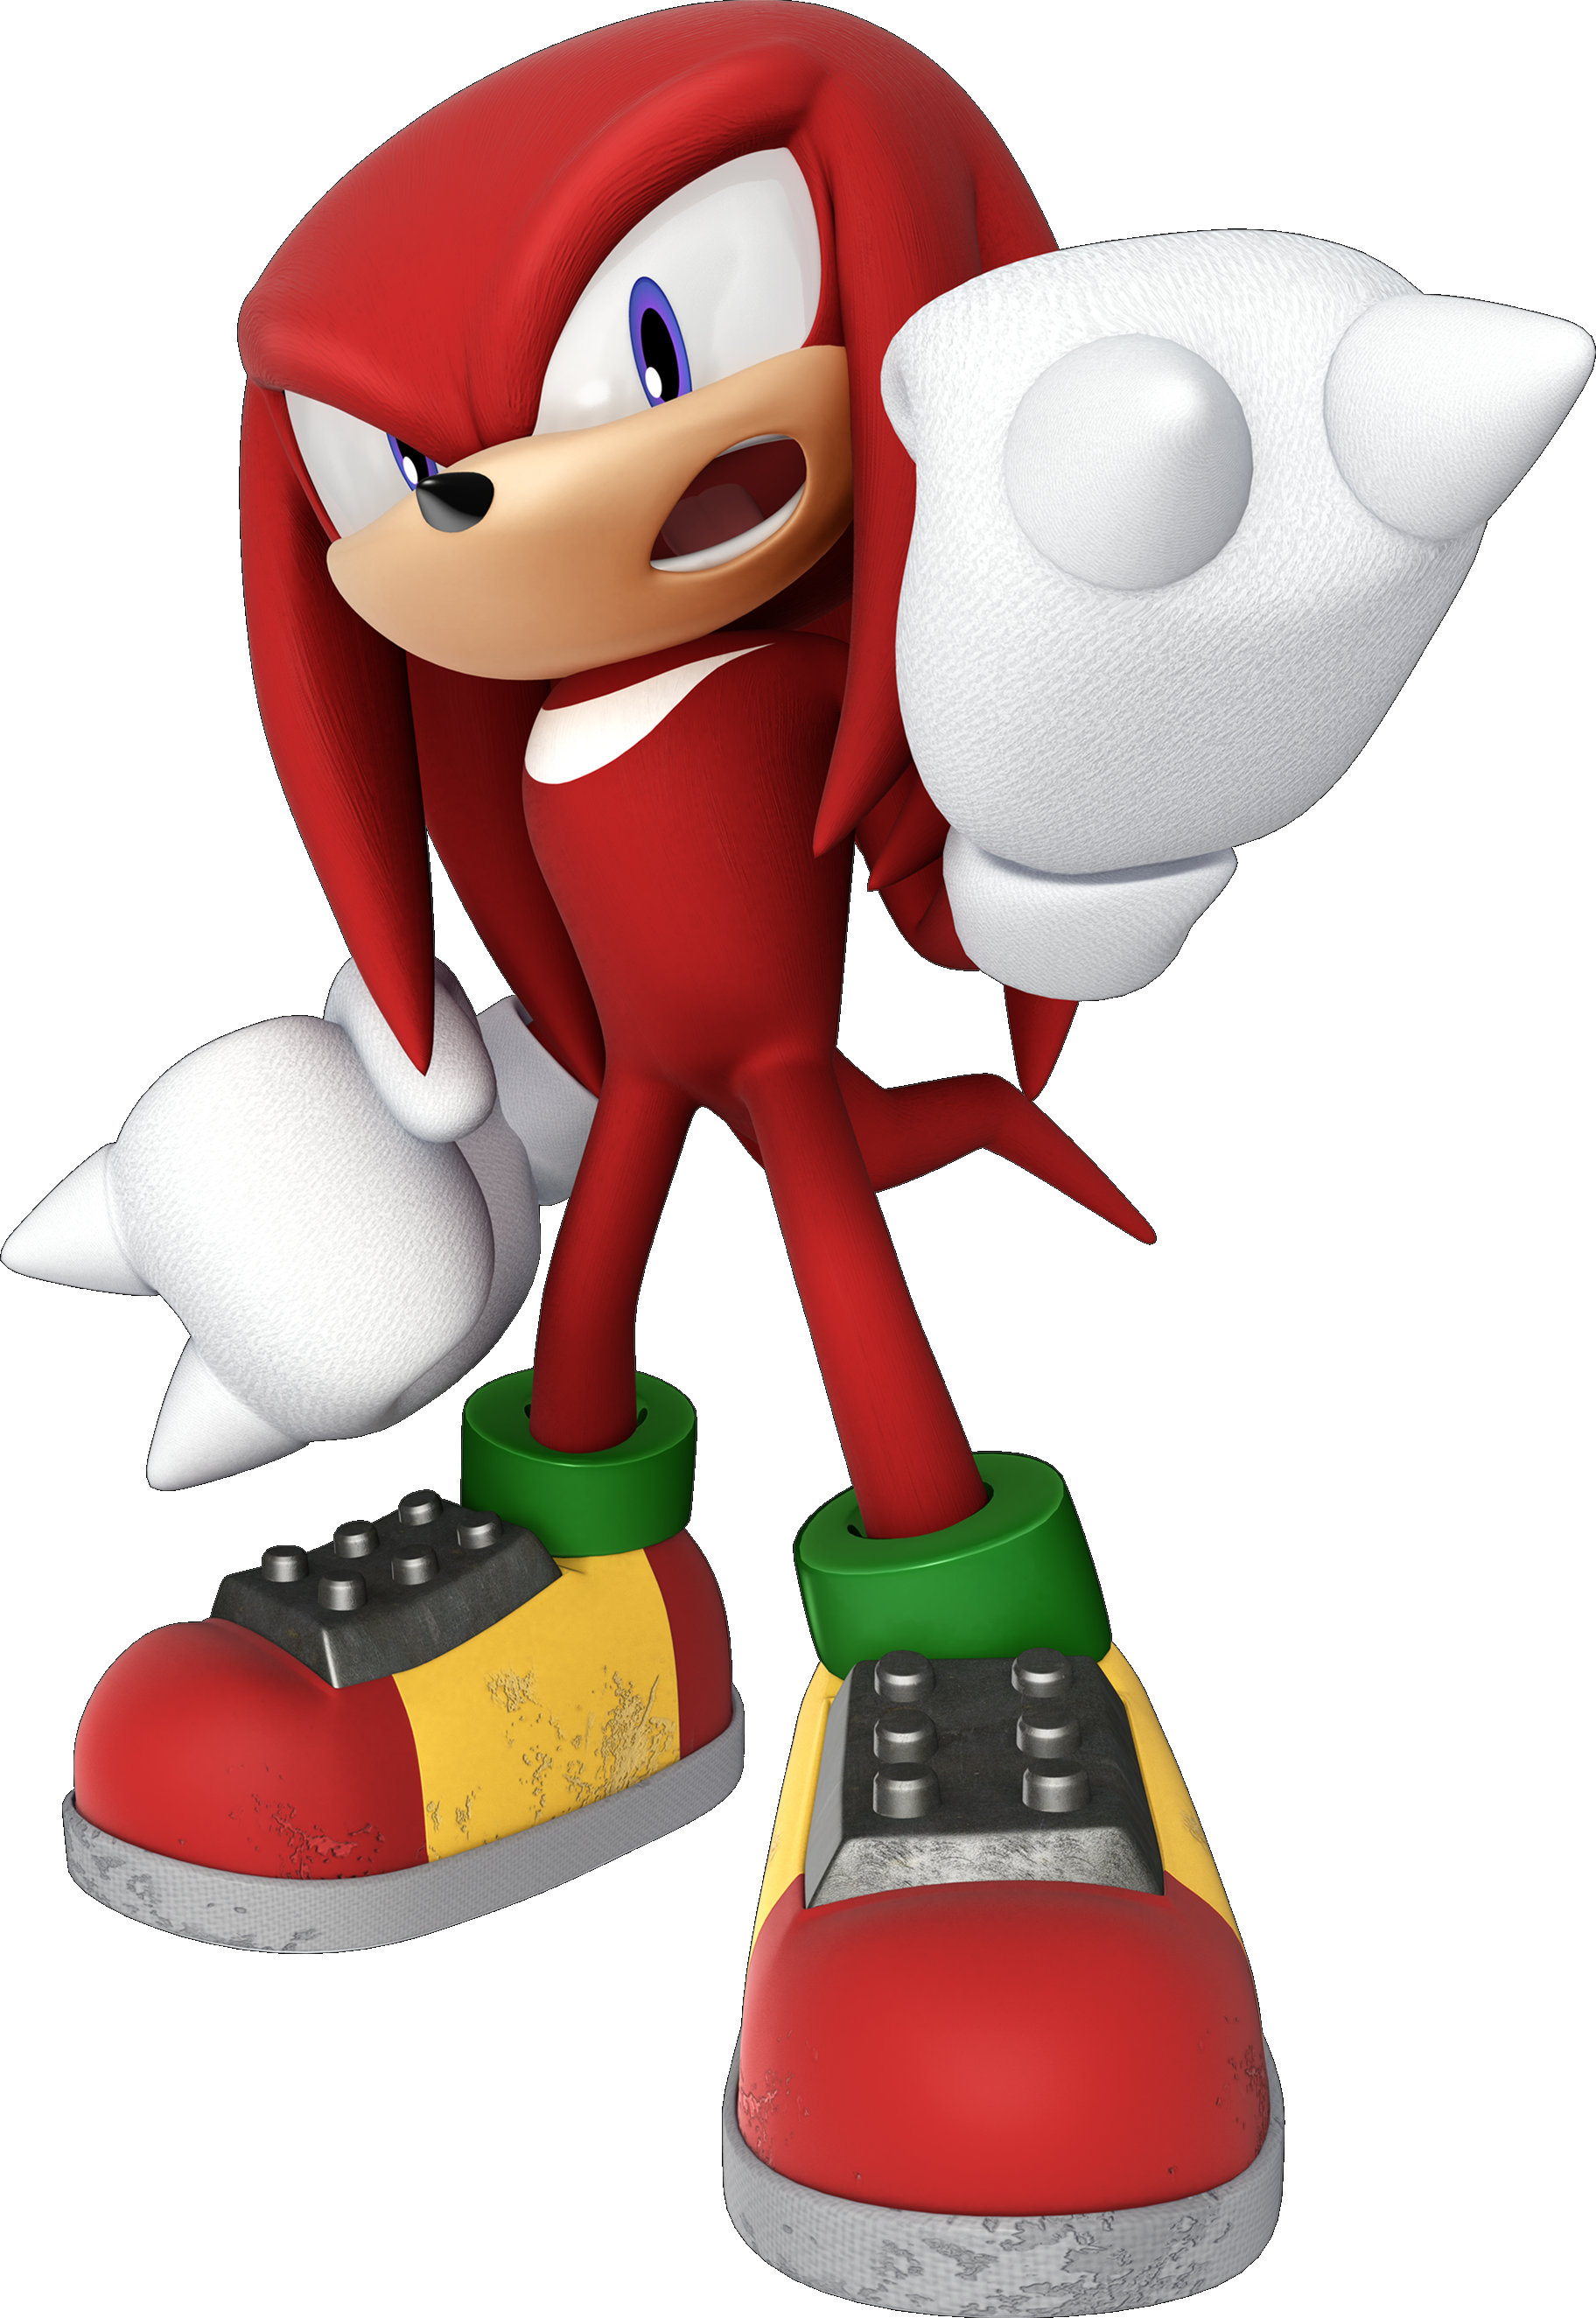 Knuckles glide png. The echidna sonic hedgehog